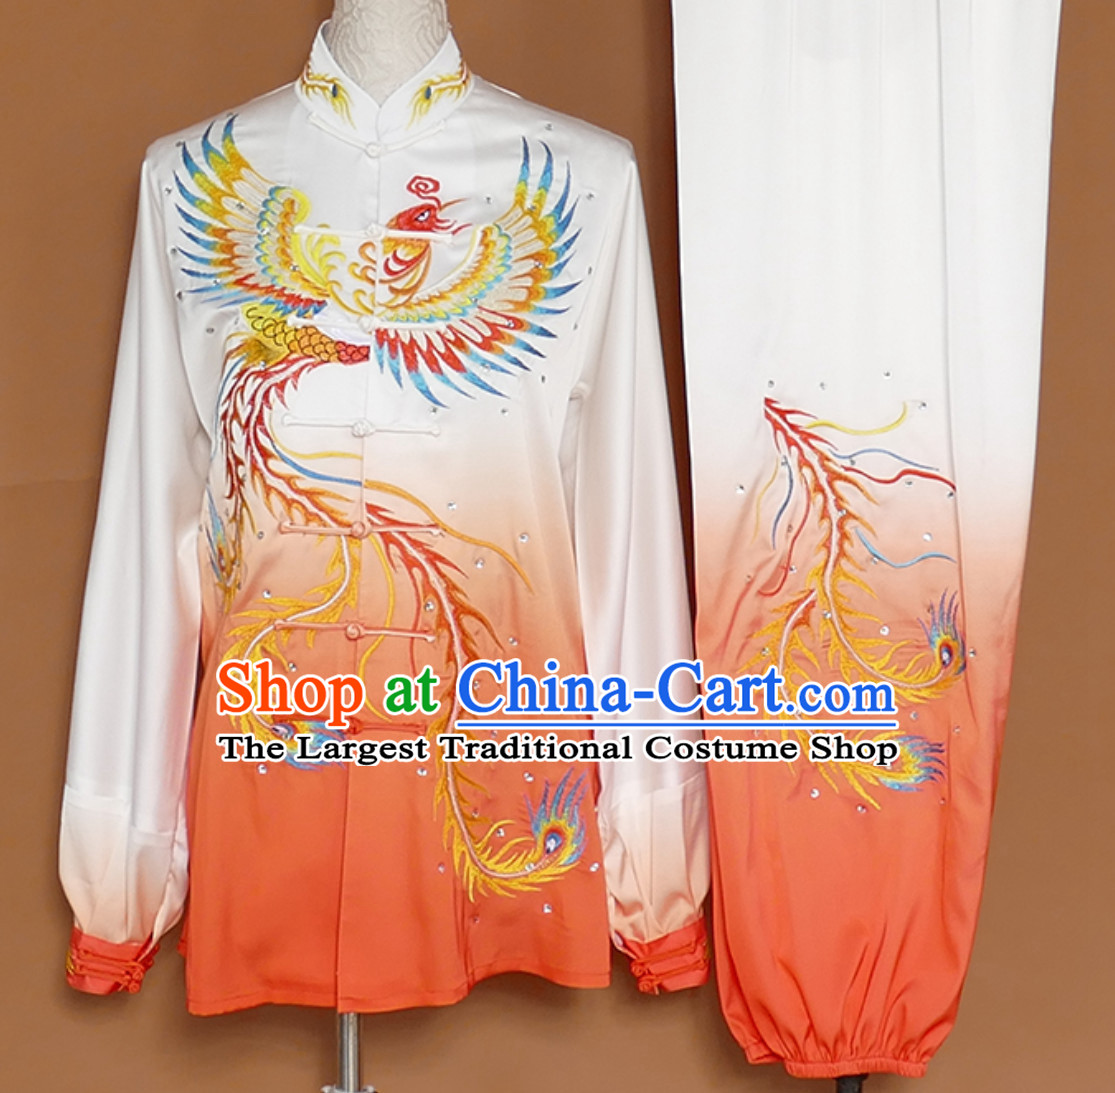 Classical Giant Phoenix Embroidered Long Sleeves Martial Arts Clothing Kung Fu Dress Wushu Suits Stage Performance Championship Competition Dresses Full Set for Girls Women